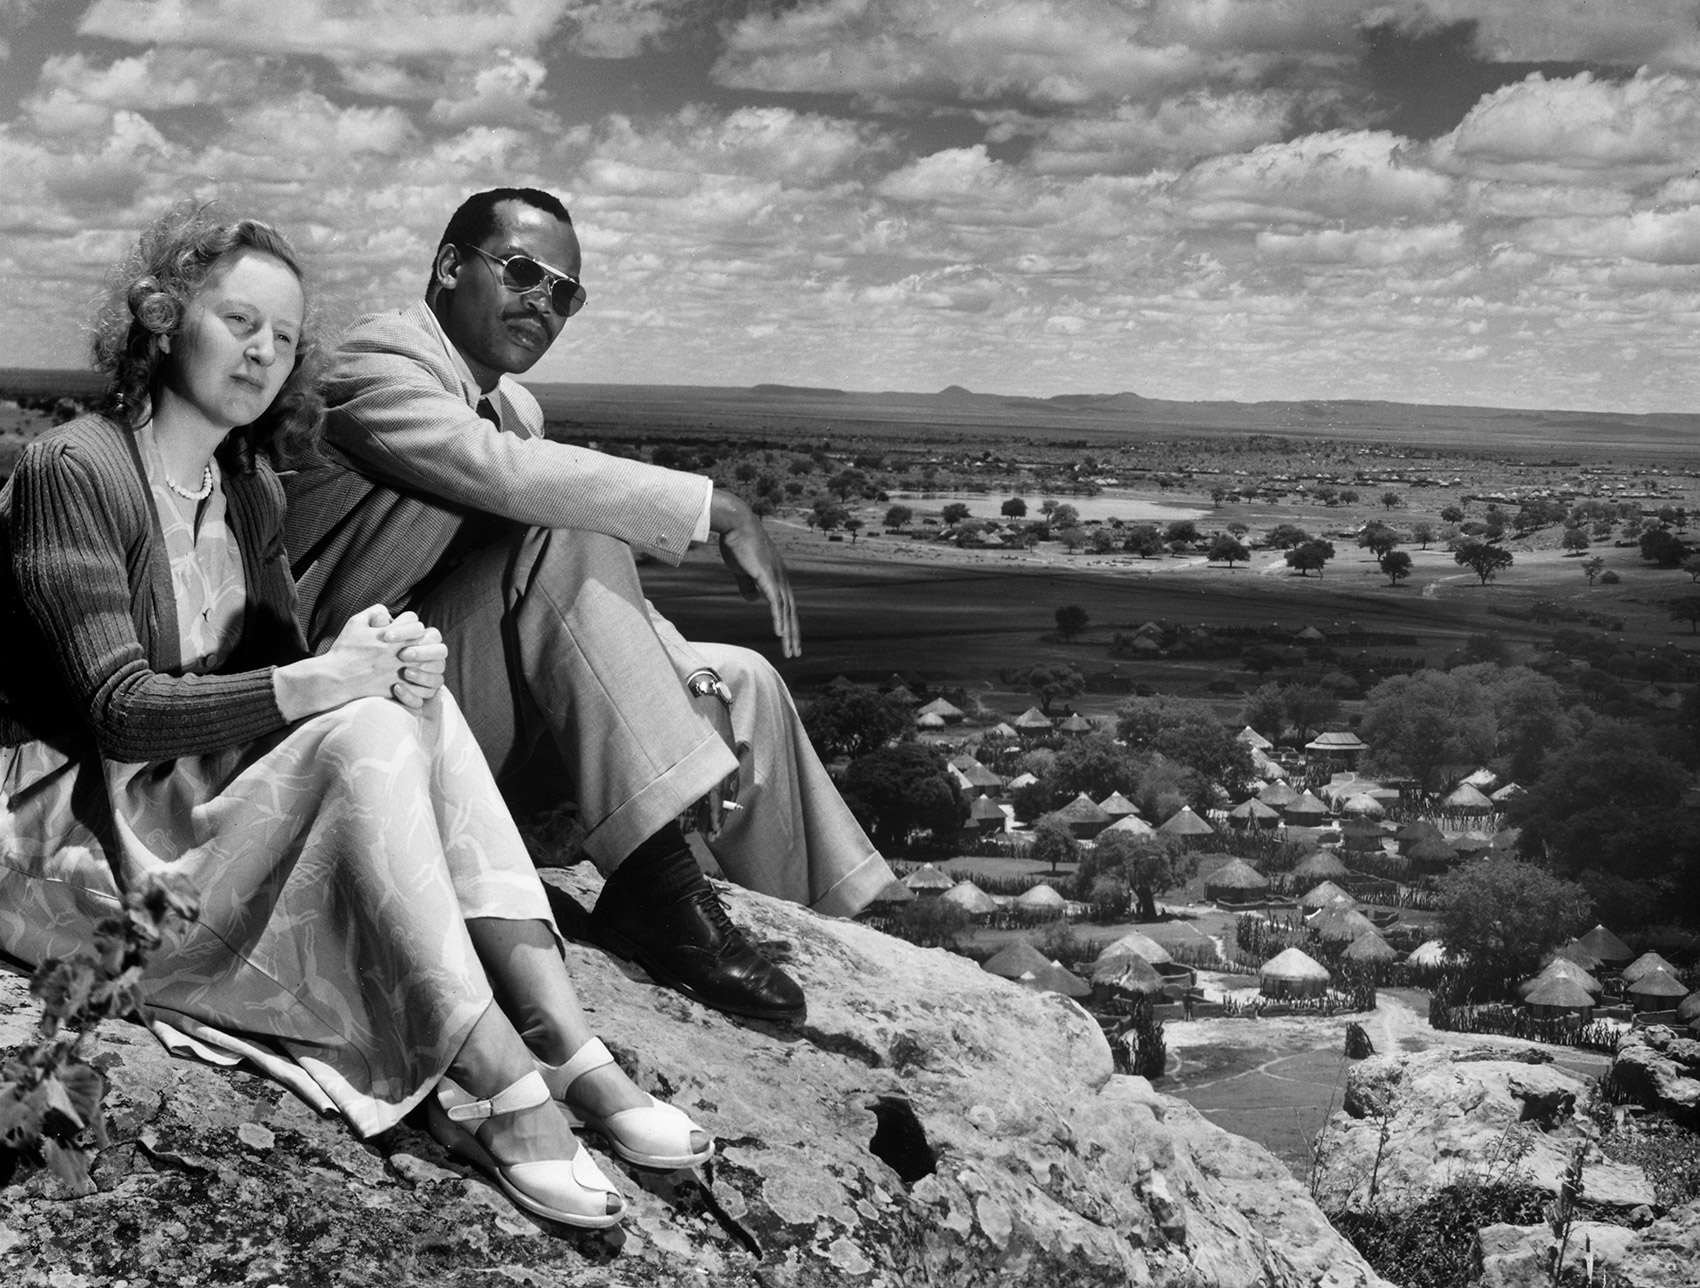 Seretse Khama and his British-born wife, Ruth, overlooking Bechuanaland, 1950.